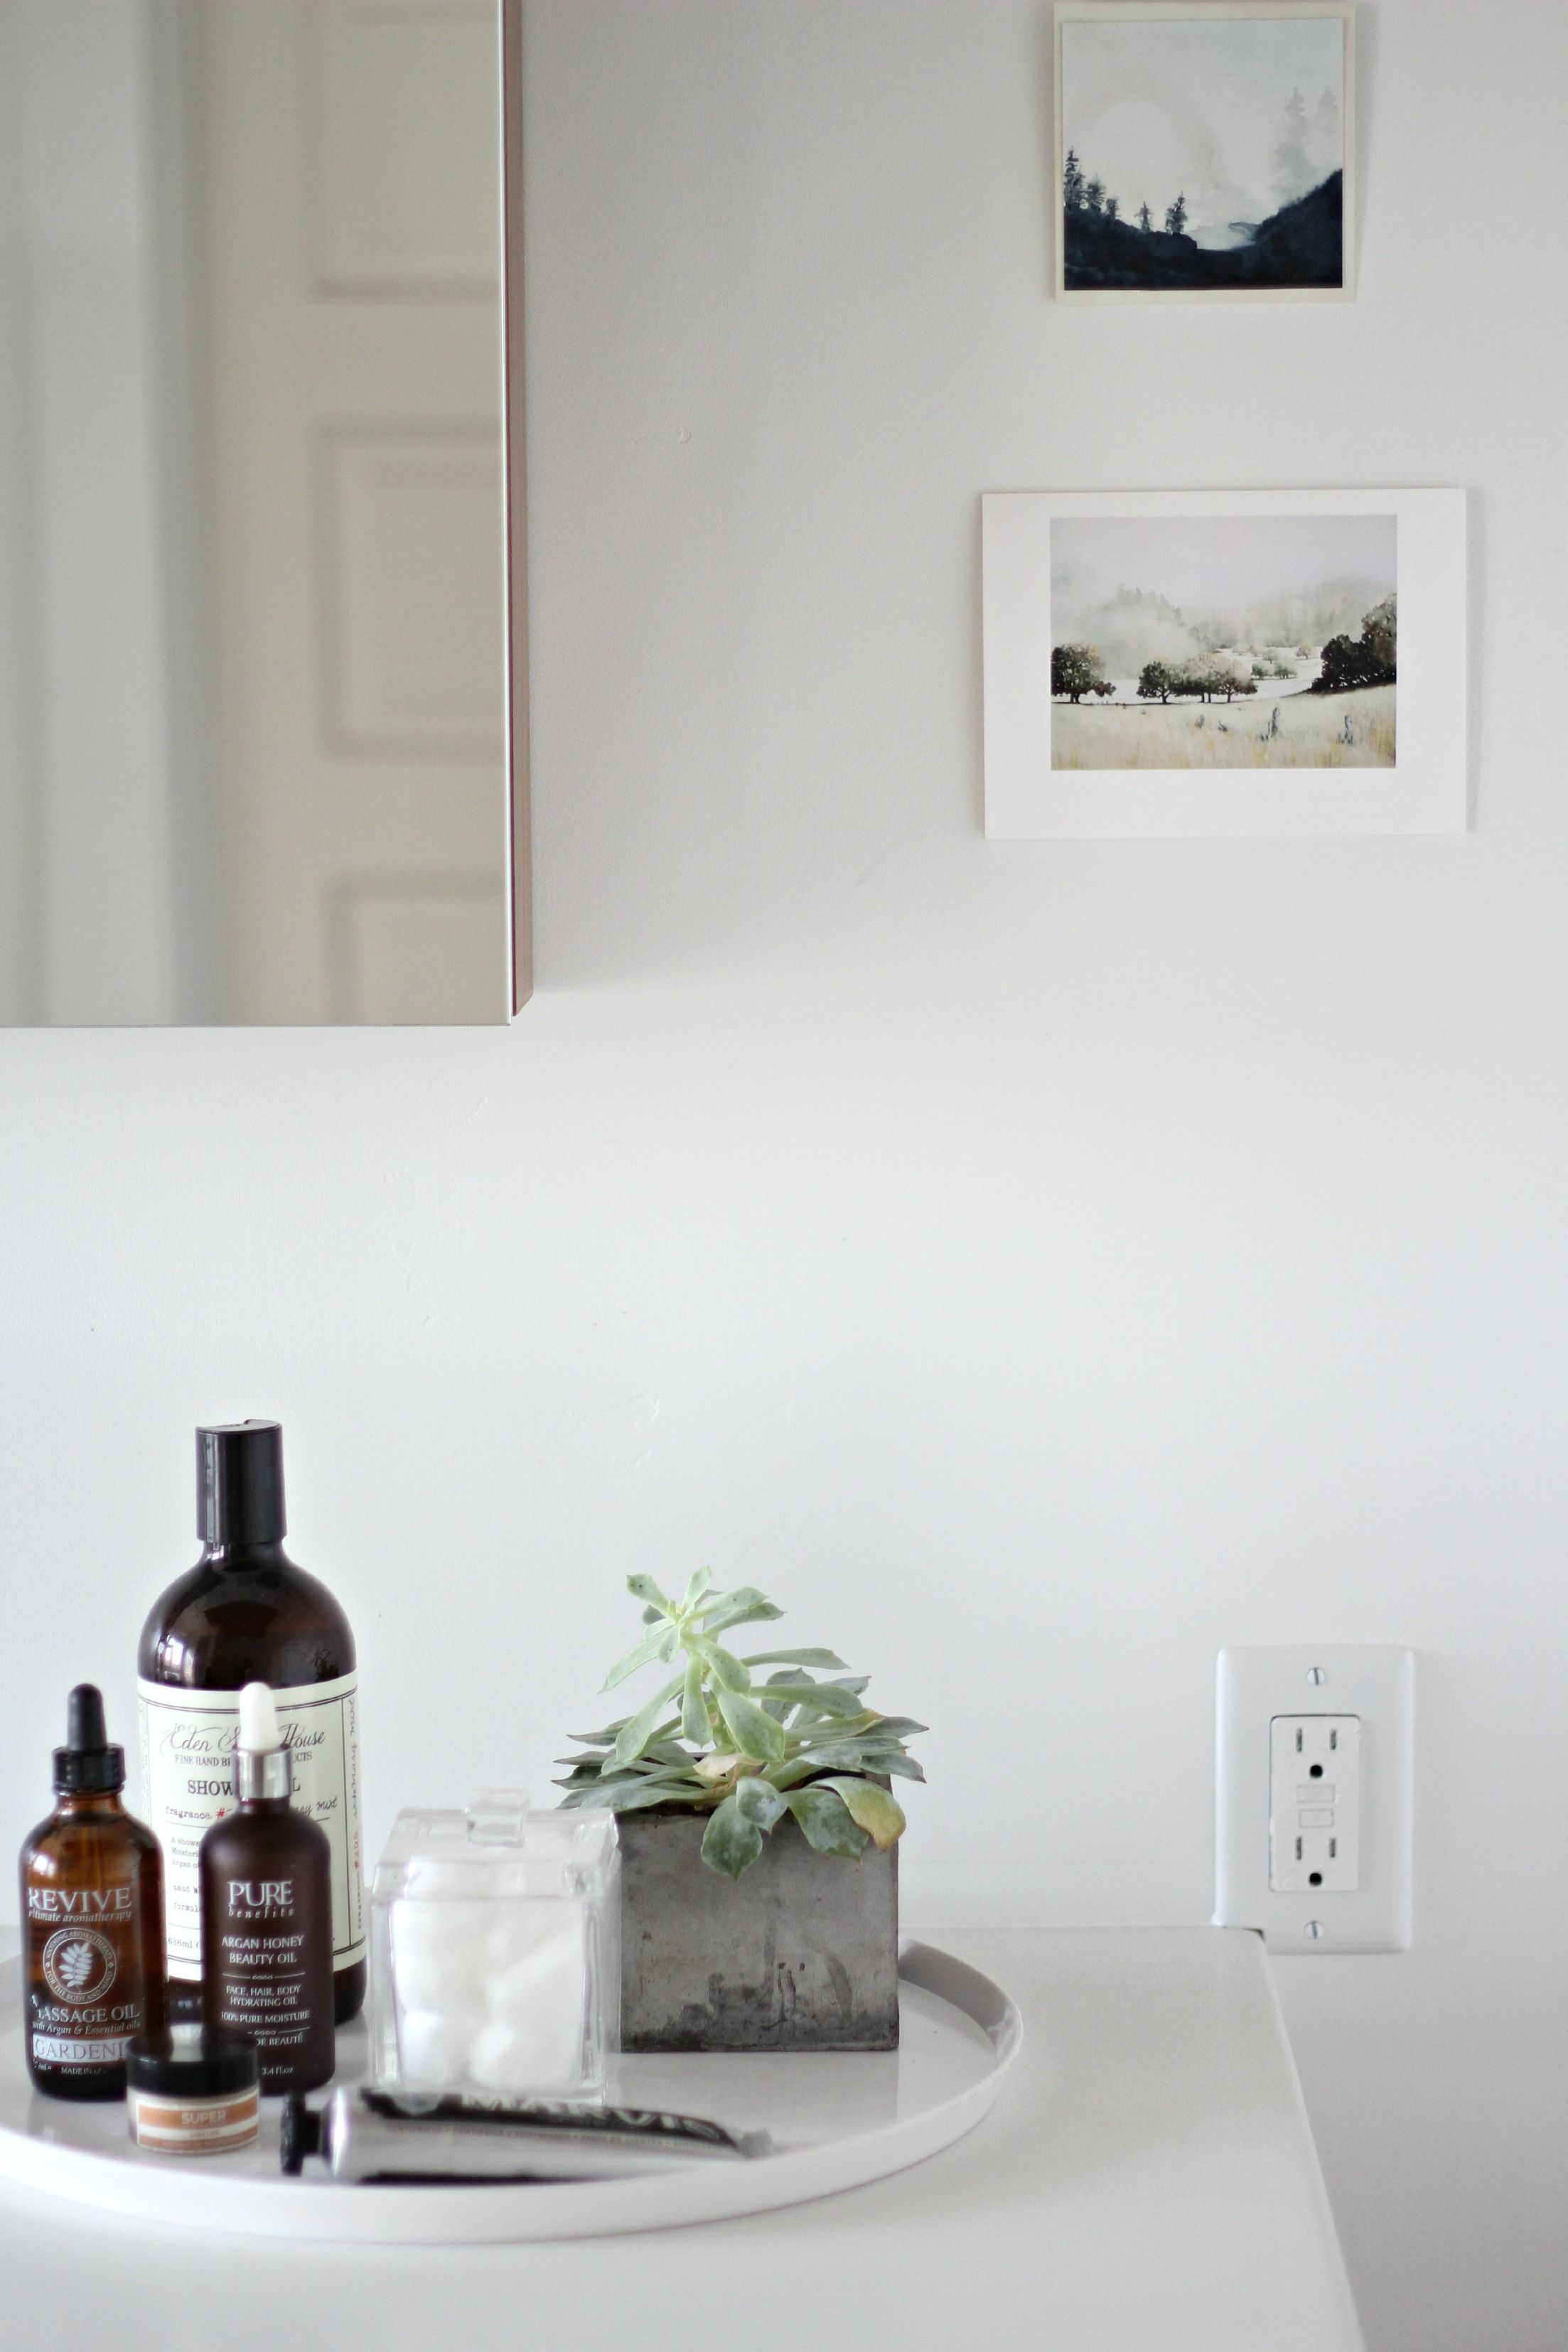 Bathroom Designed By Kirsten Grove Of Simply Grove House